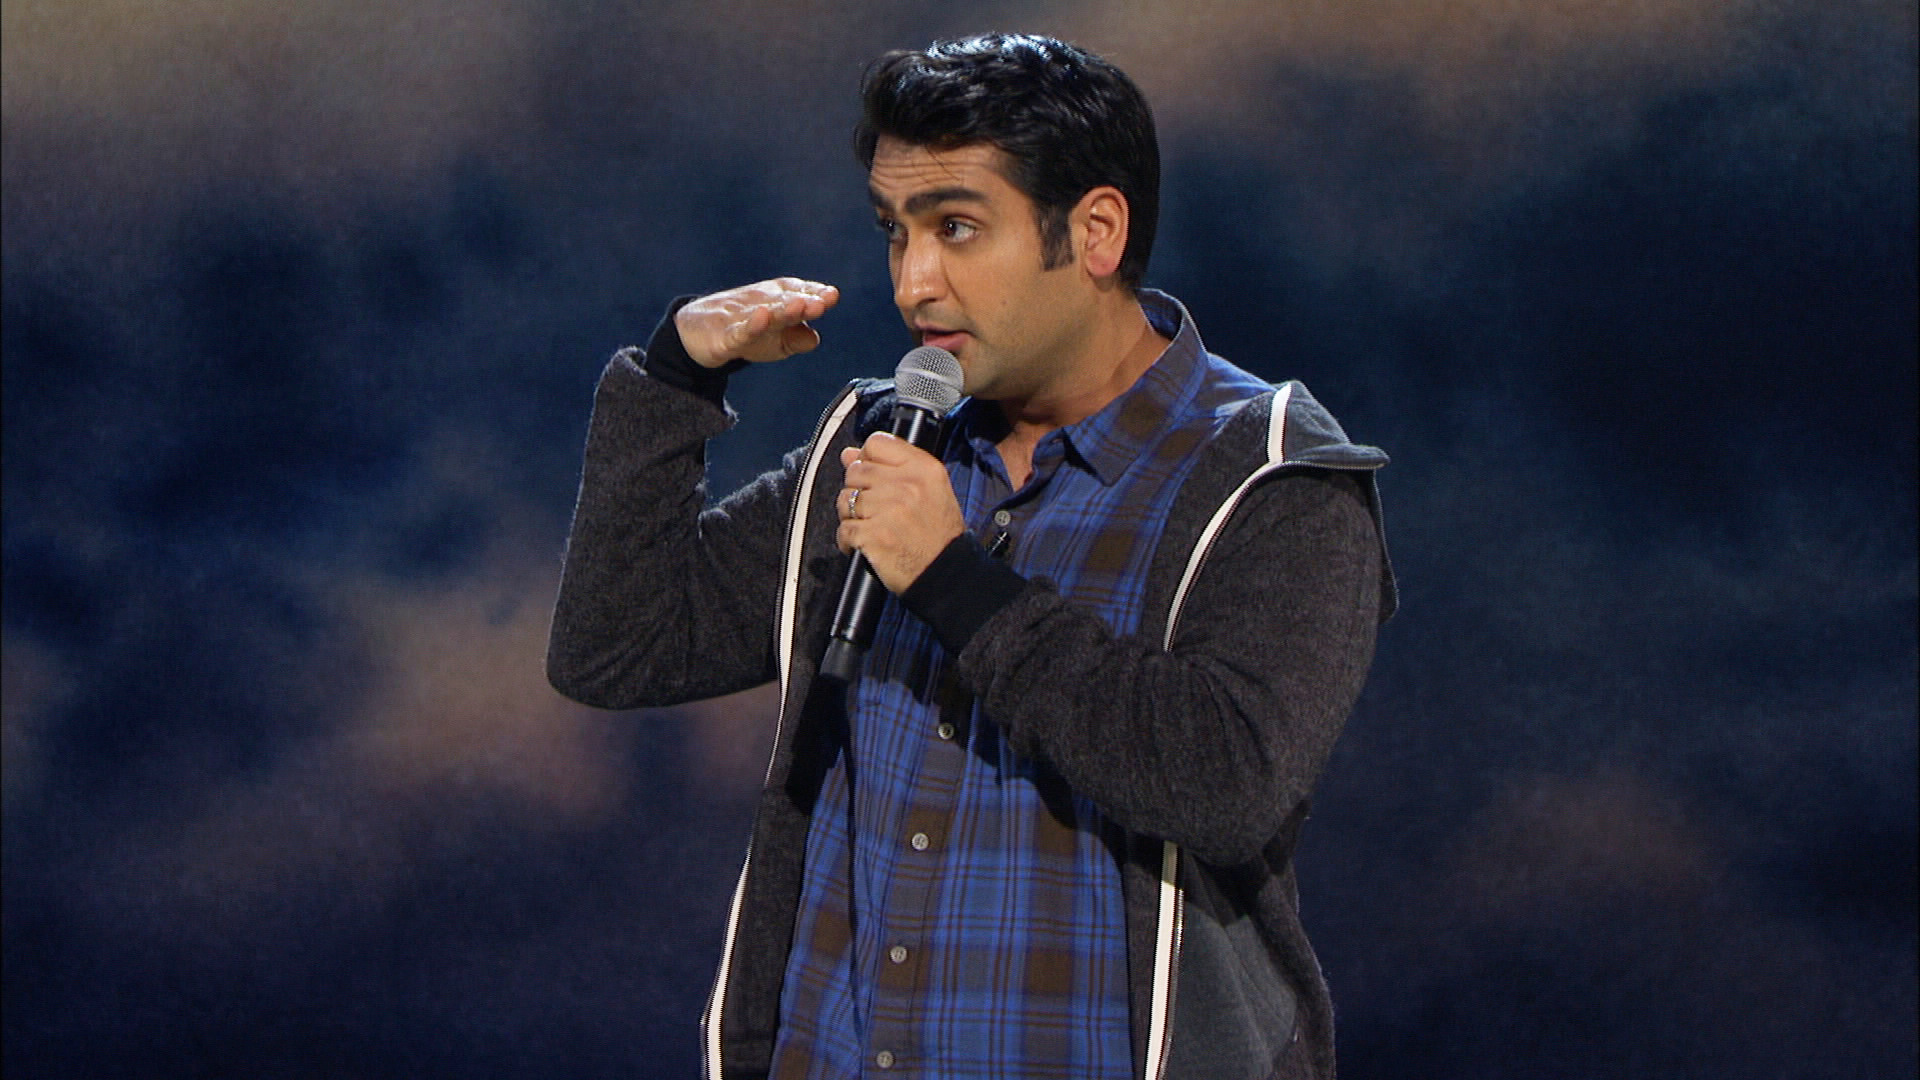 Uncensored - Kumail Nanjiani - House of Betas Pt. 3